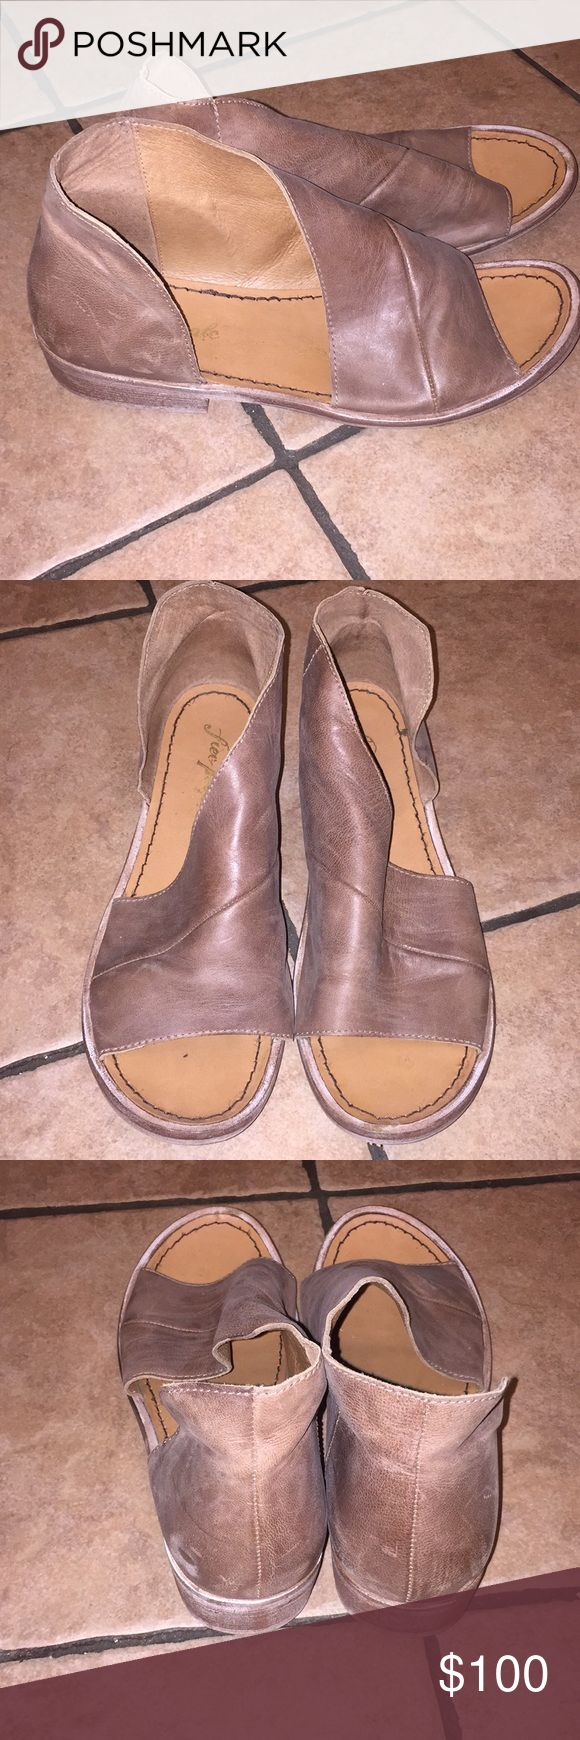 """Free People """"Mont Blanc"""" Brown Open Toe Flats Really cool brown leather Open Toe flats/ sandals. Only worn once!! Really comfy. Fits more like a 9.5 than a 10 (size 40). Free People Shoes Flats & Loafers"""